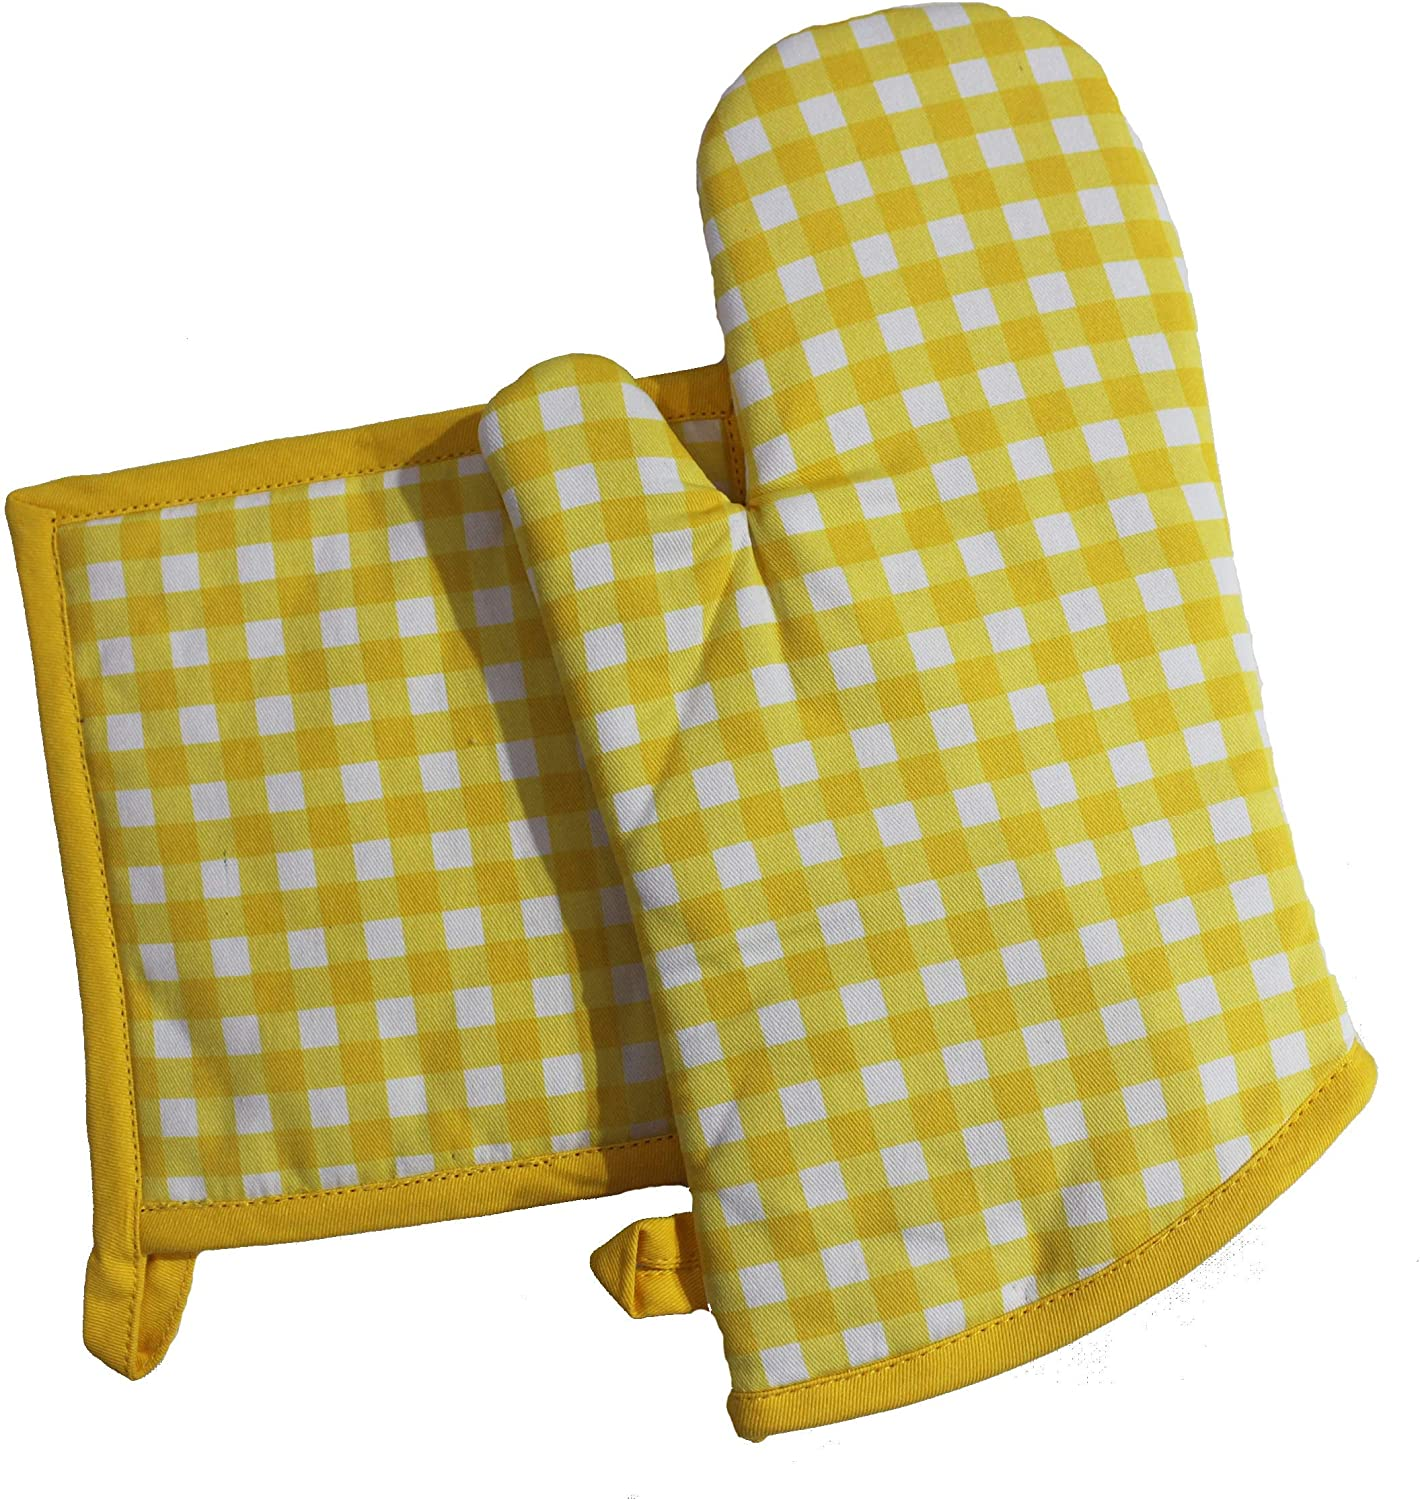 """Cotton Candy Yellow Oven Mitten and Pot Holder Set.100% Cotton. One Pot Holder - 8""""x8"""" and One Oven Mitts - 7""""x13"""", Comfortable, Machine Washable, Heat Resistant."""